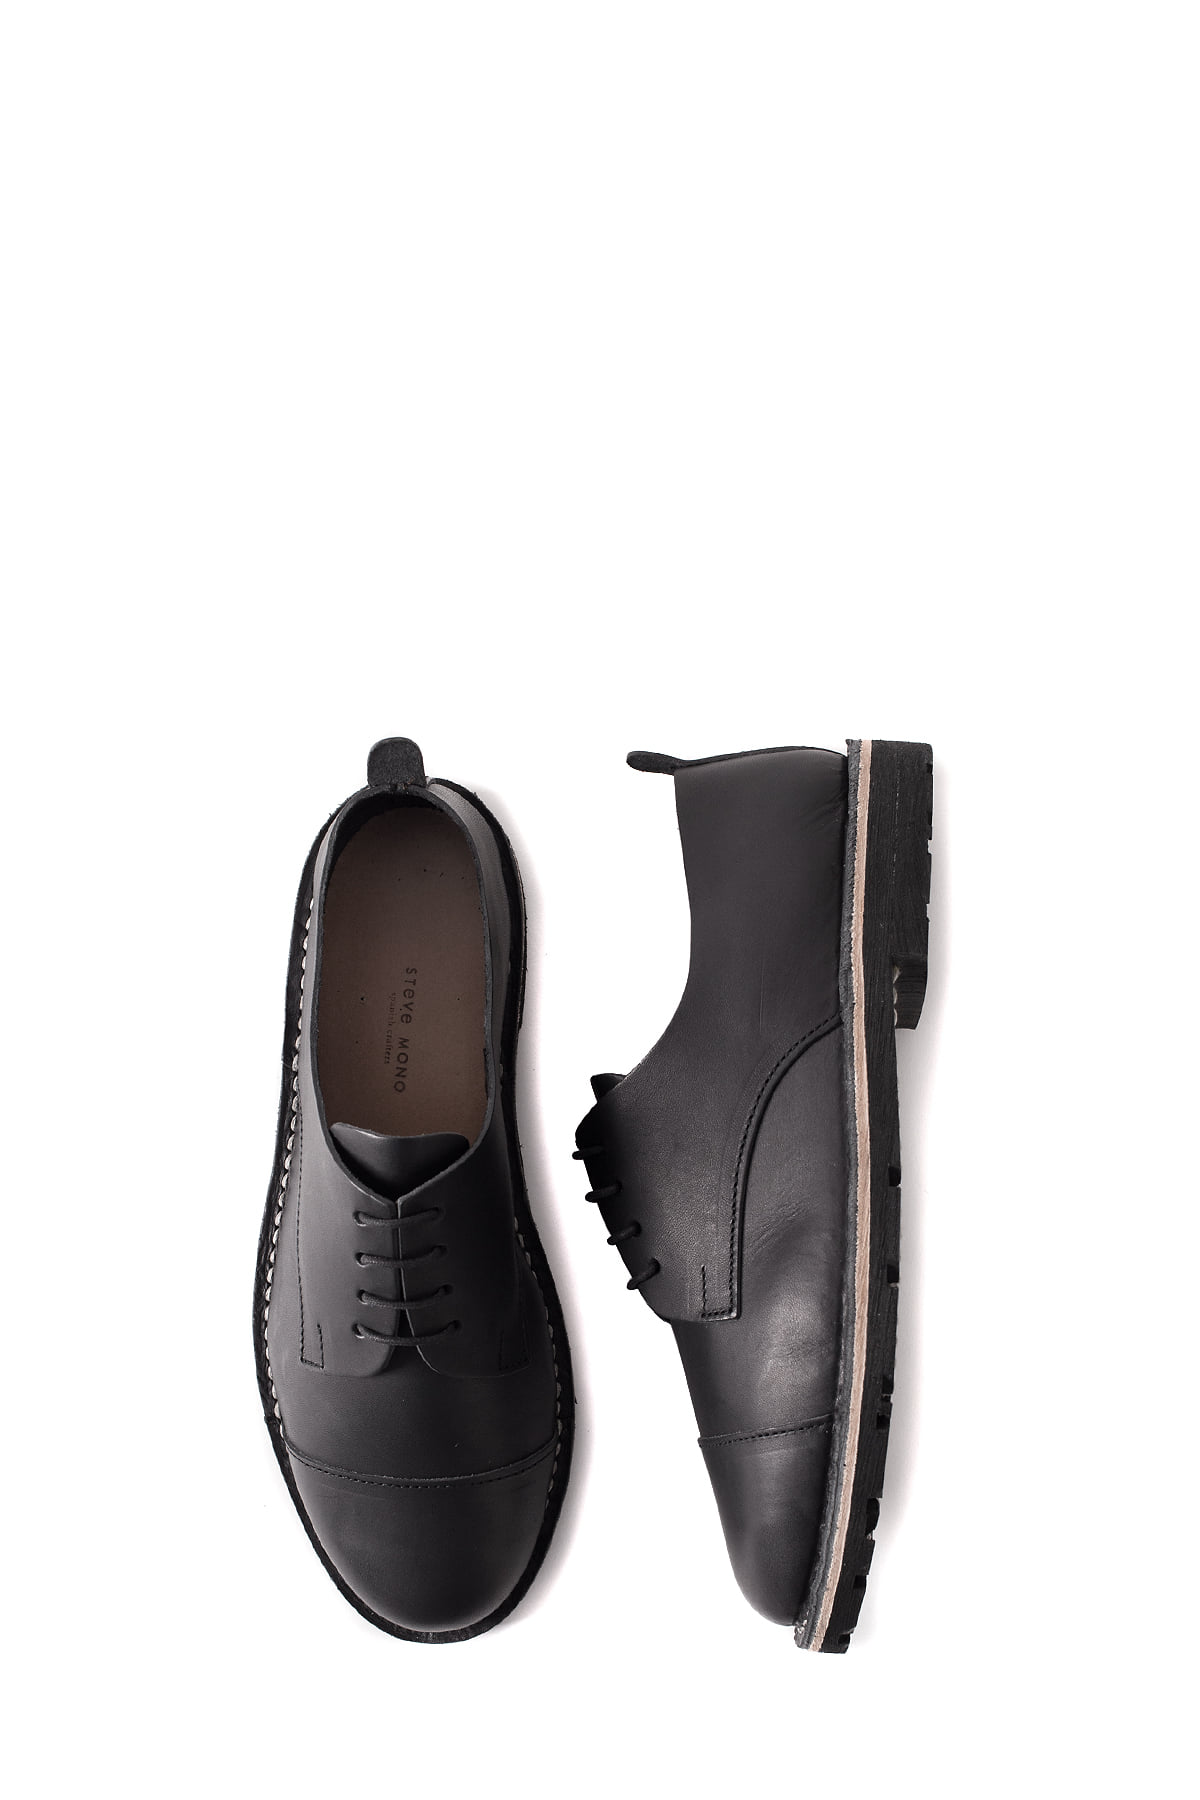 STEVE MONO : Artisanal Shoes 10/03 (Black)